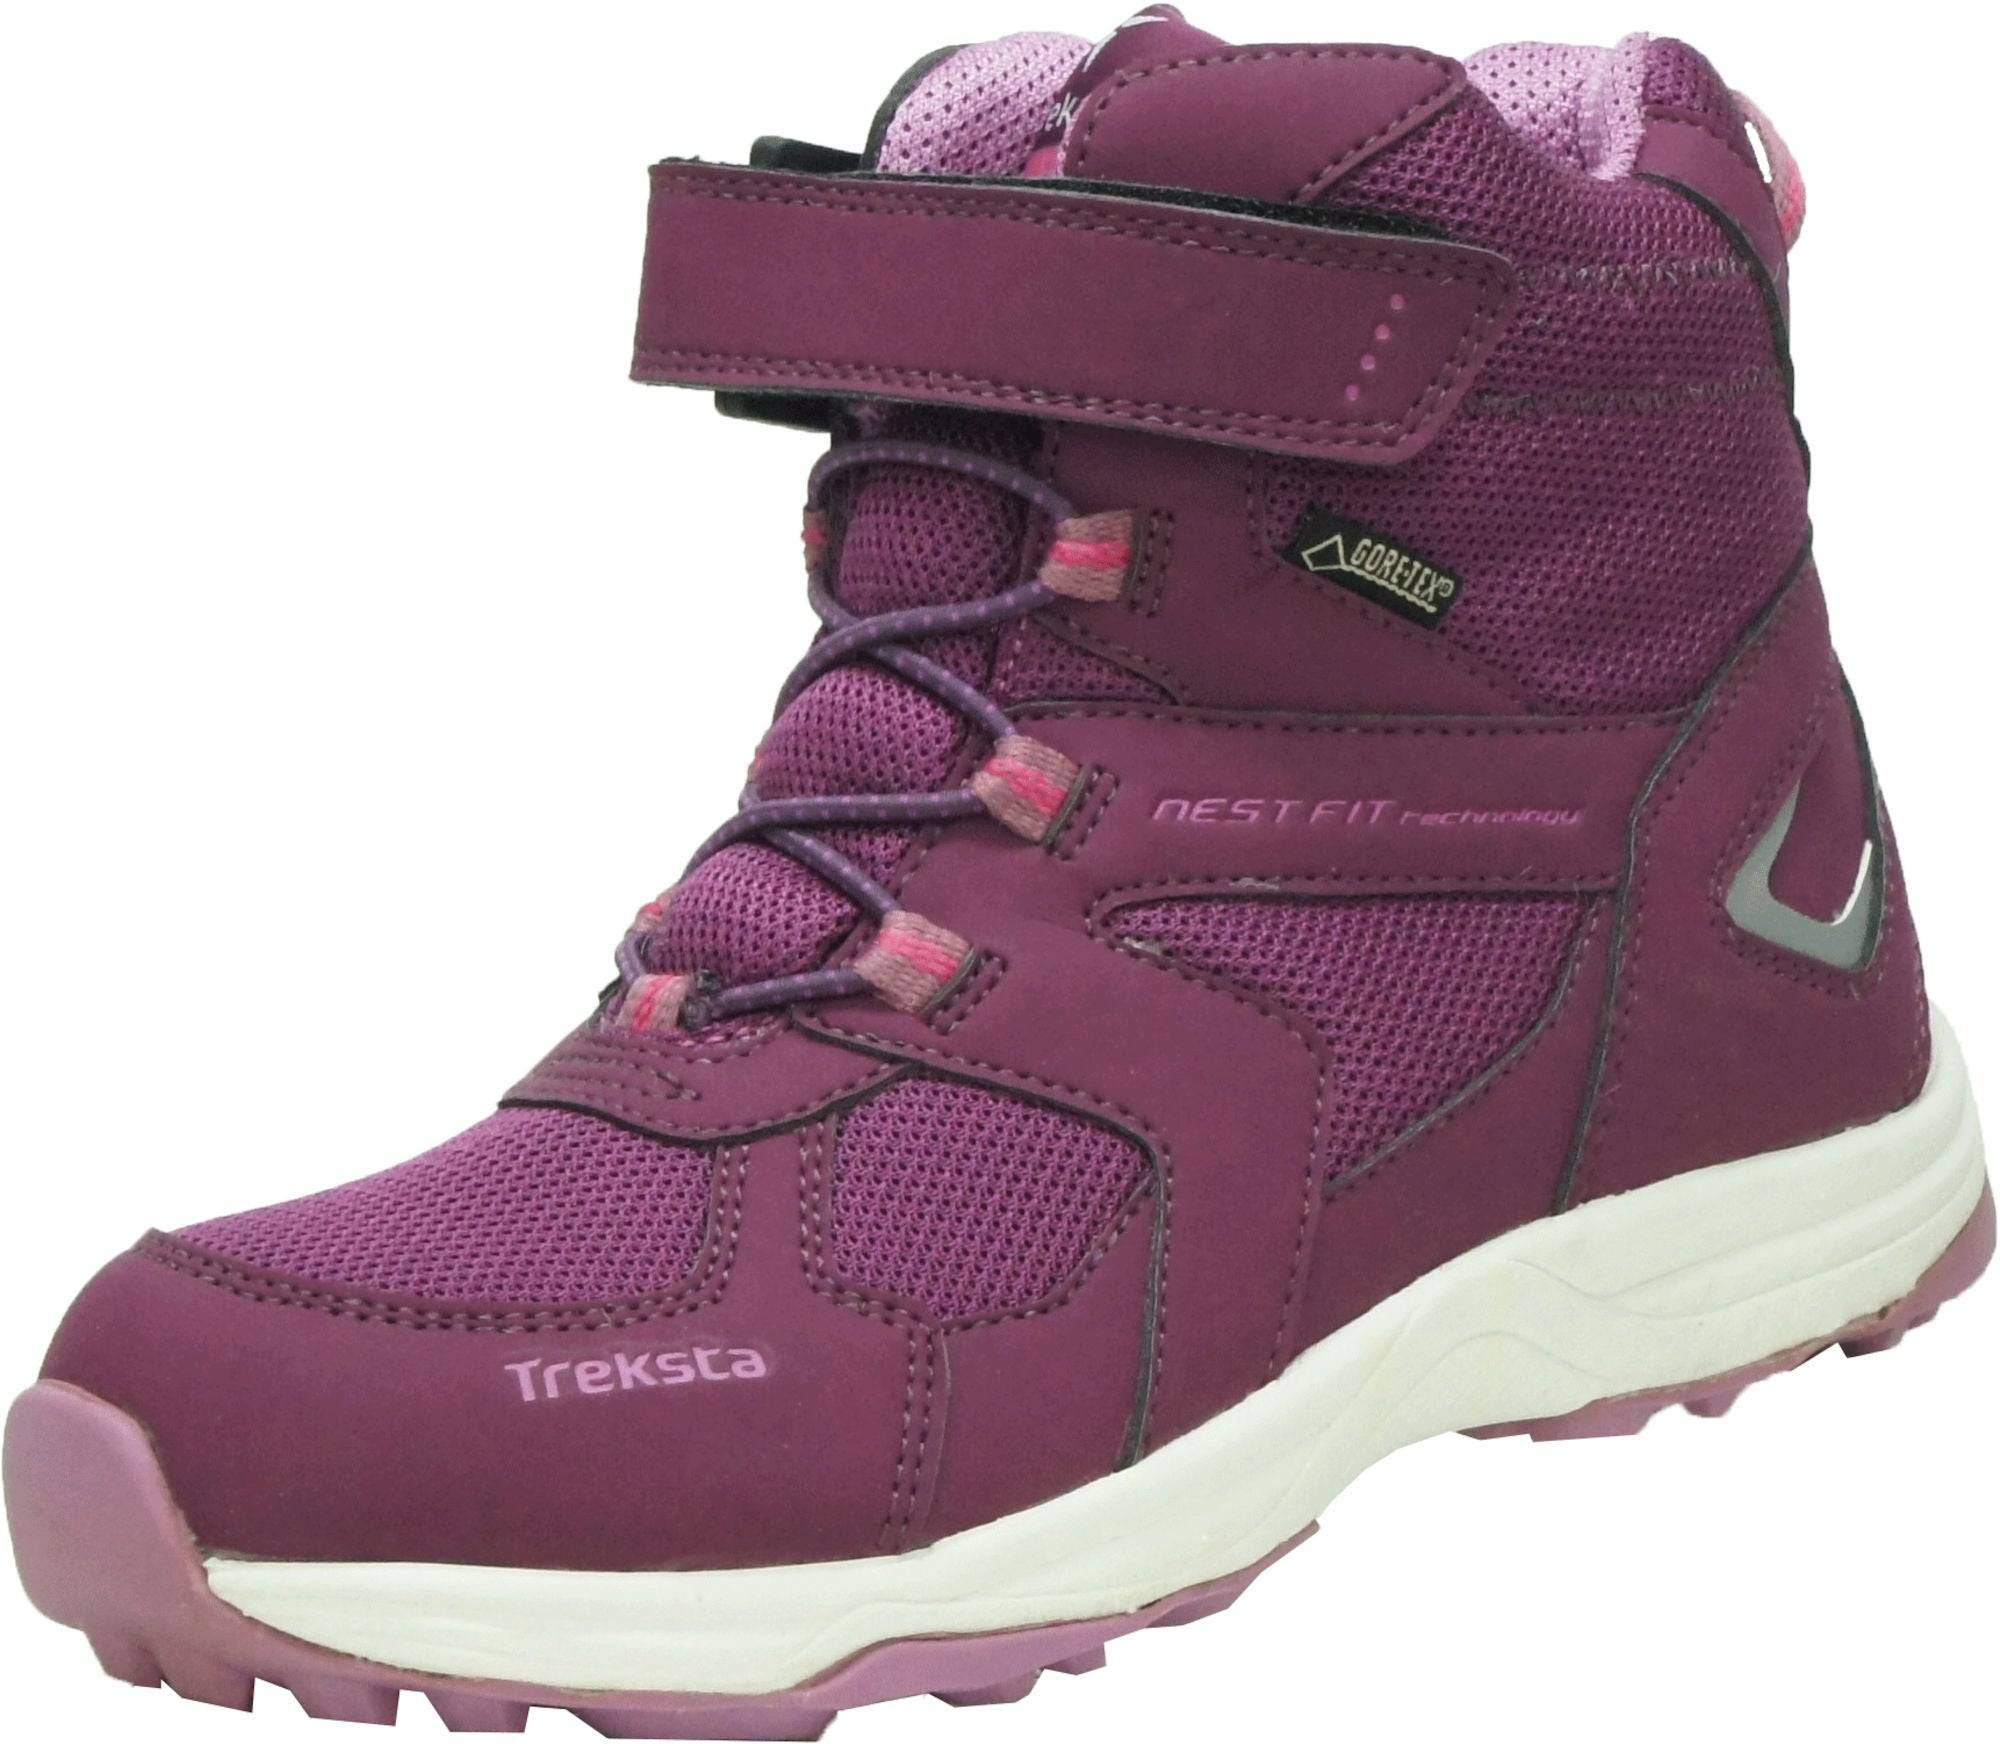 Treksta Arrow GTX Vintersko, Purple 27